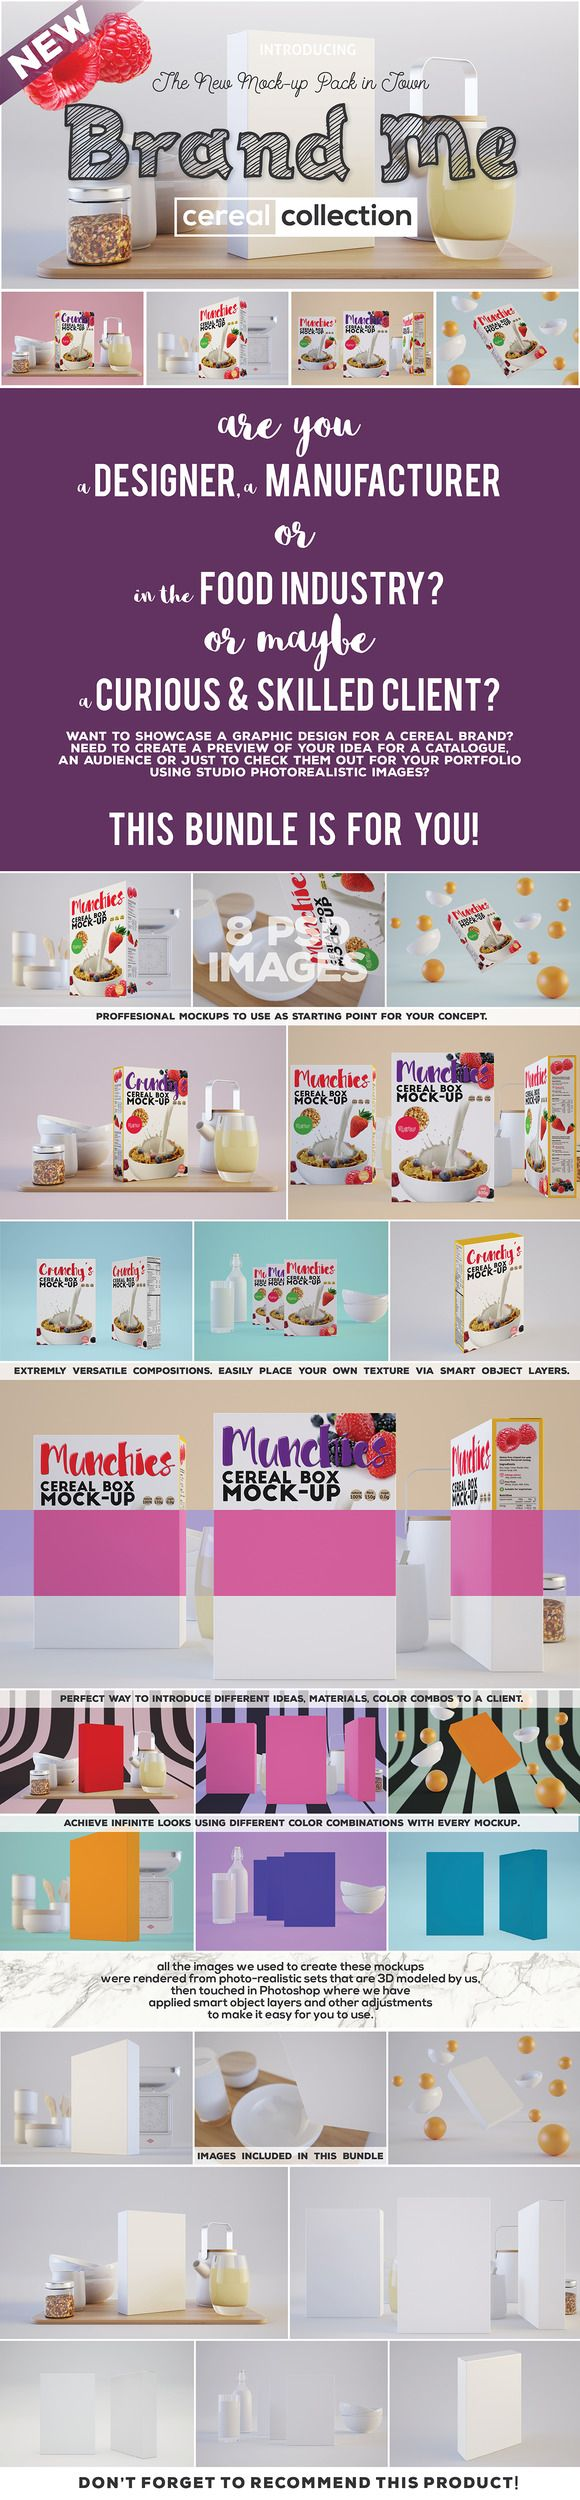 Brand Me - Cereal Mock-up Collection by Northern Kraft on @creativemarket